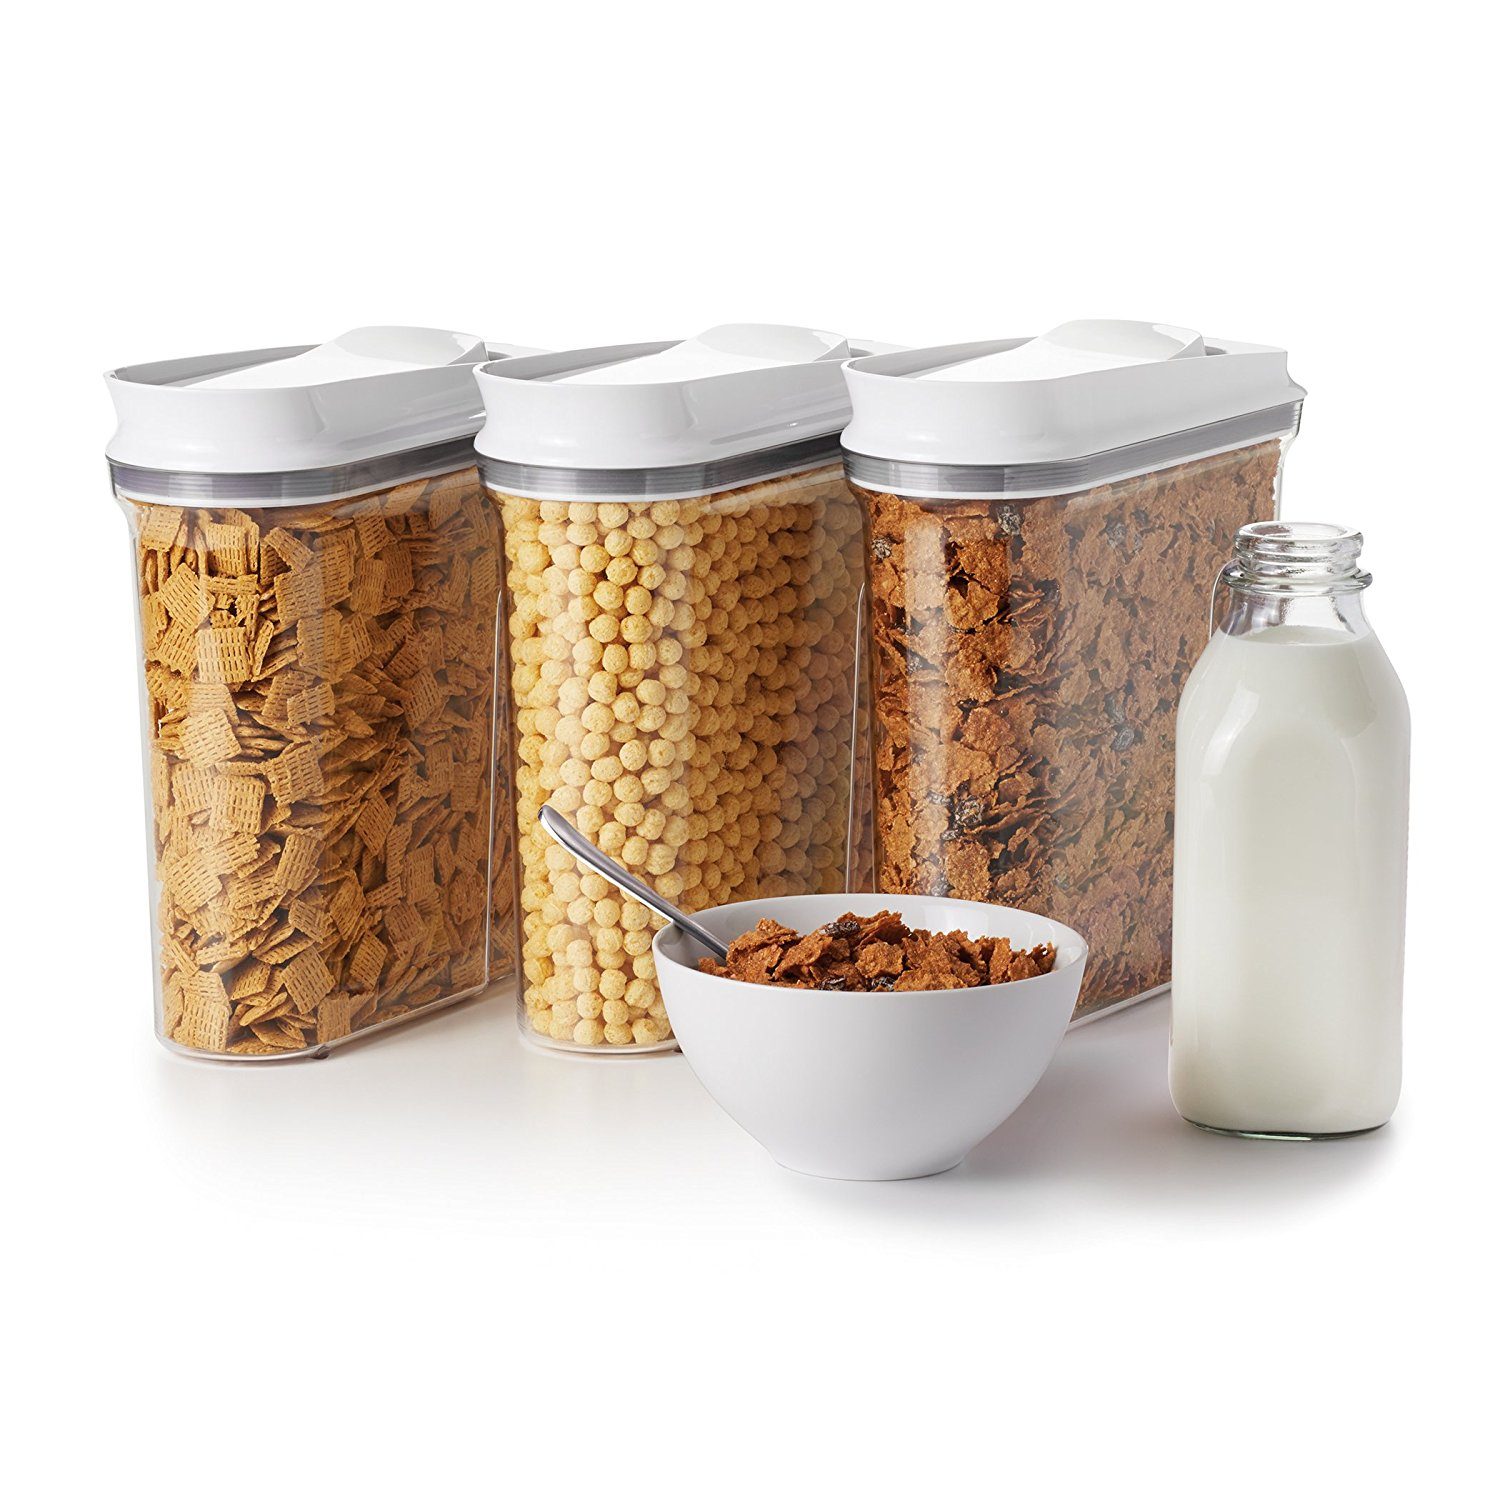 OXO Good Grips Cereal Dispenser Set